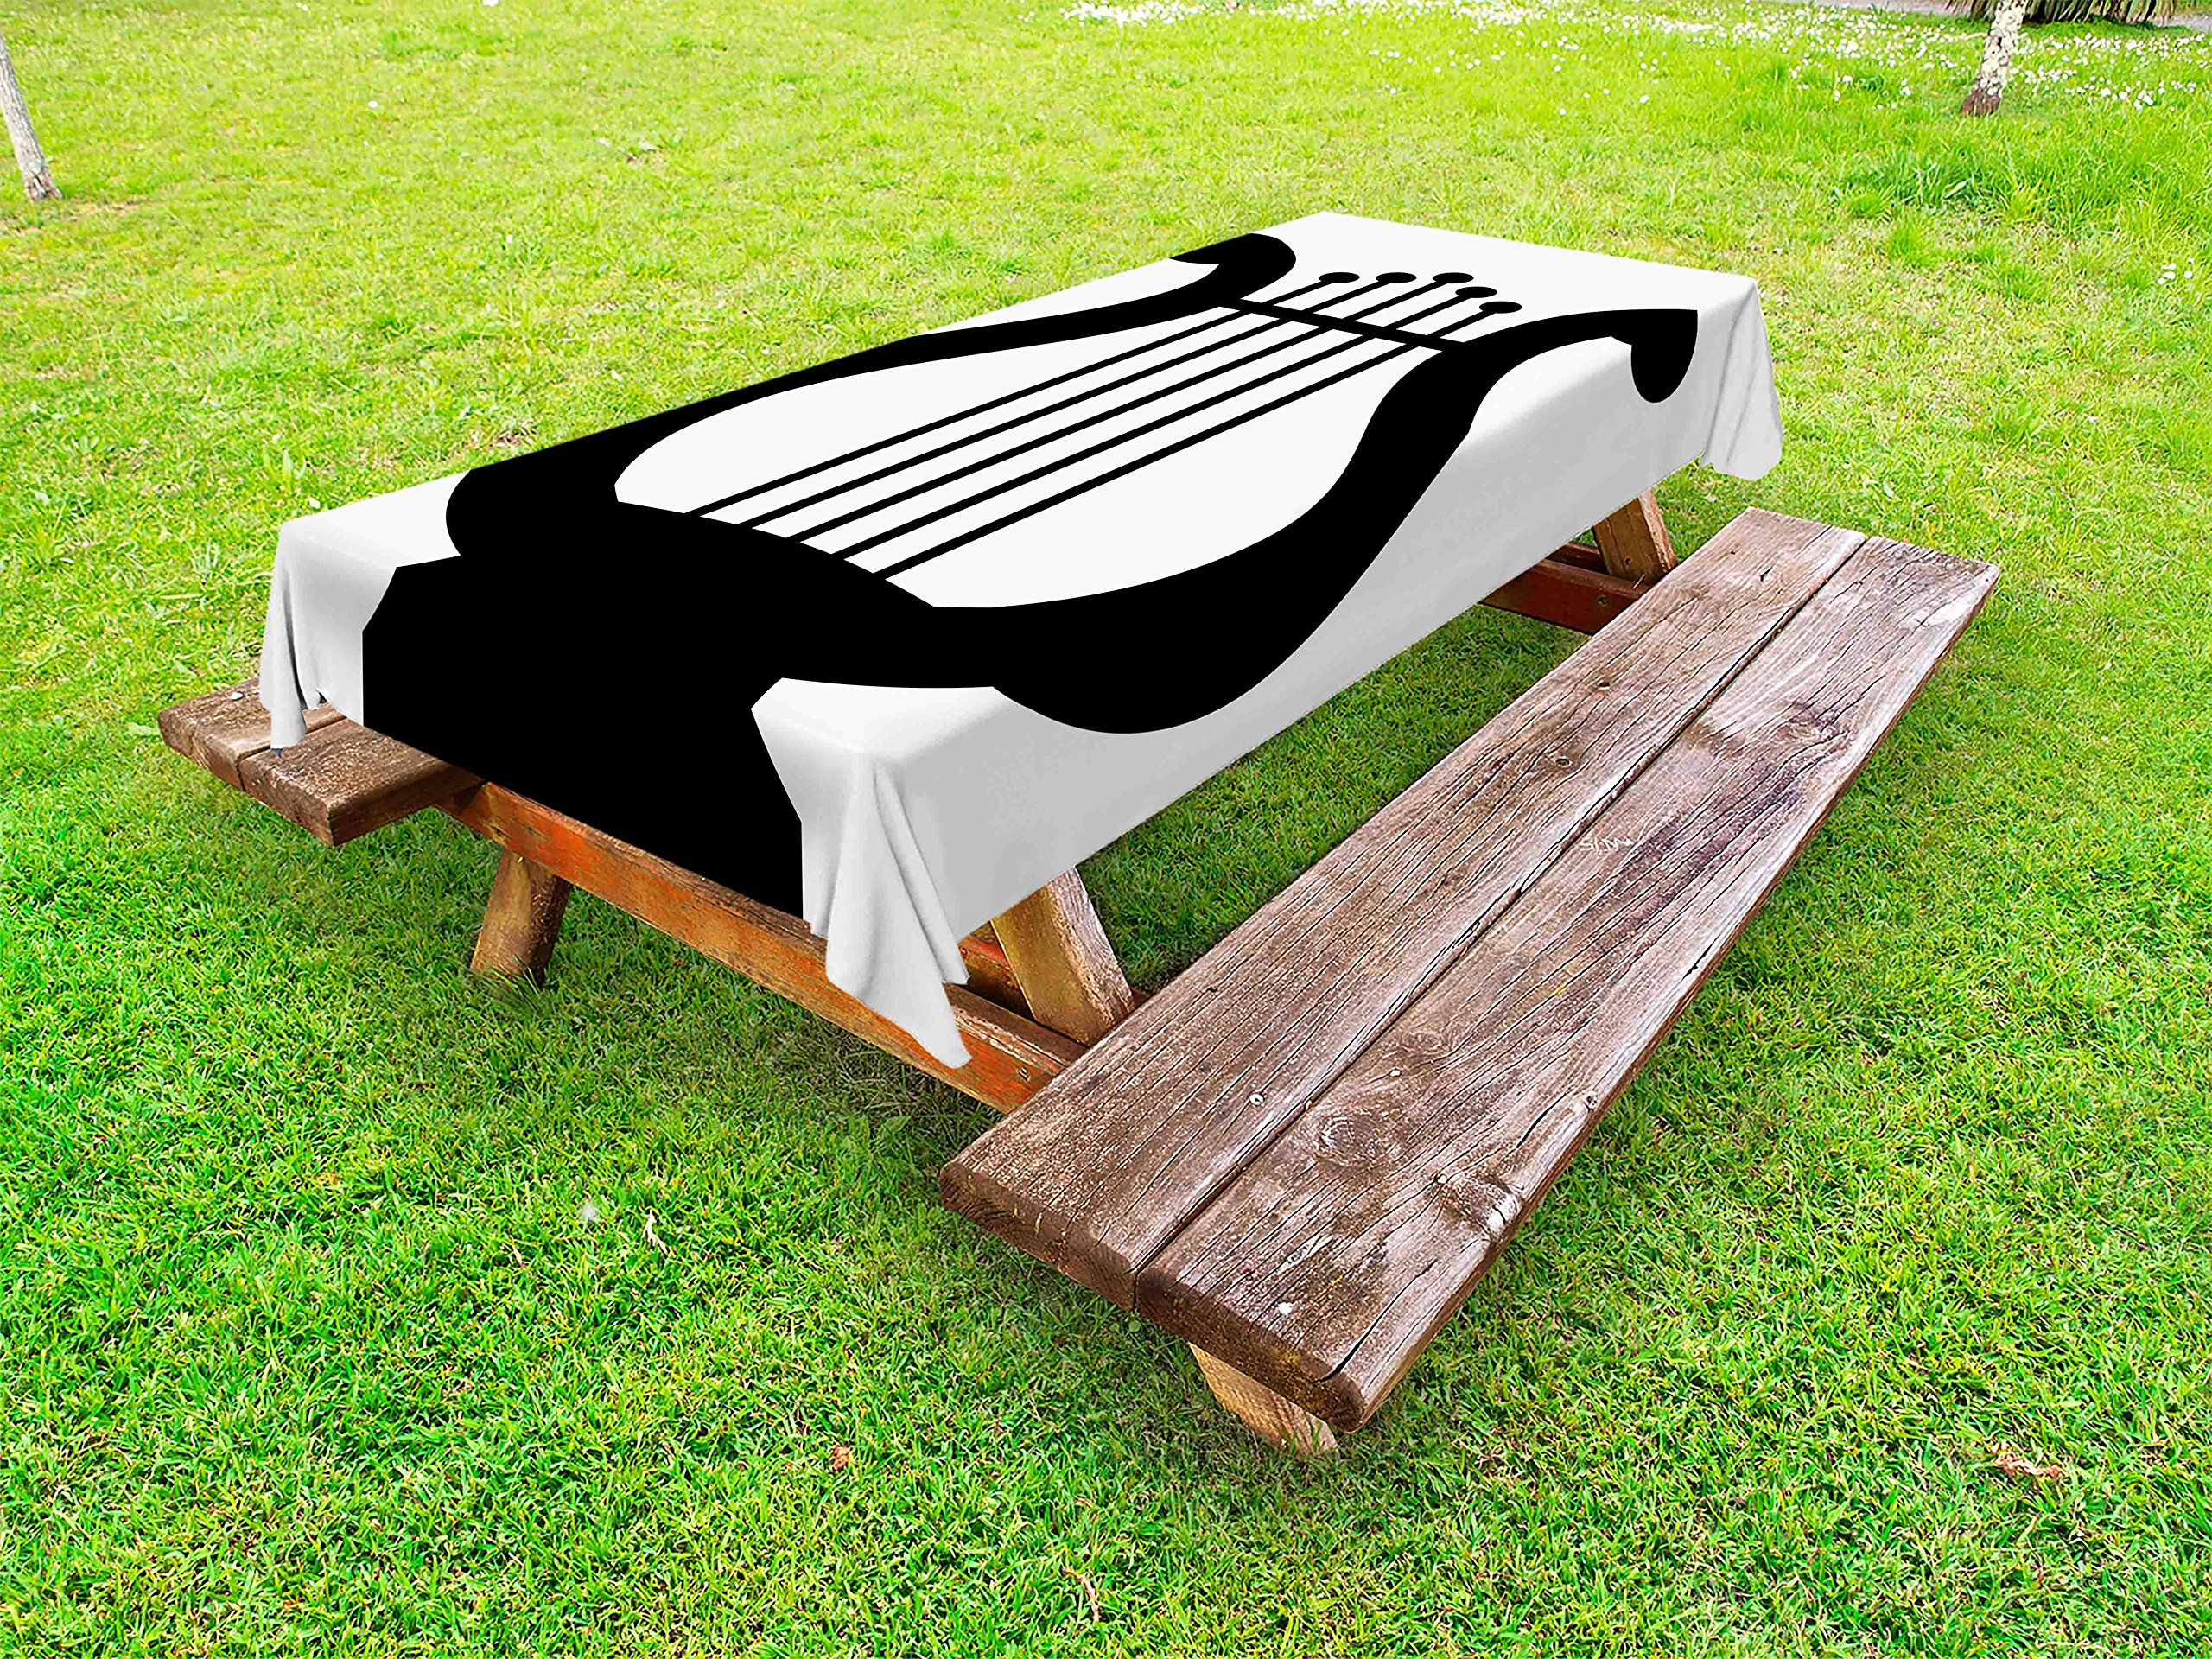 Lunarable Lyre Outdoor Tablecloth, Greek Classical Antique Harp Ancient Mesopotamia Culture Art Icon Forms Illustration, Decorative Washable Picnic Table Cloth, 58 X 104 inches, Black White